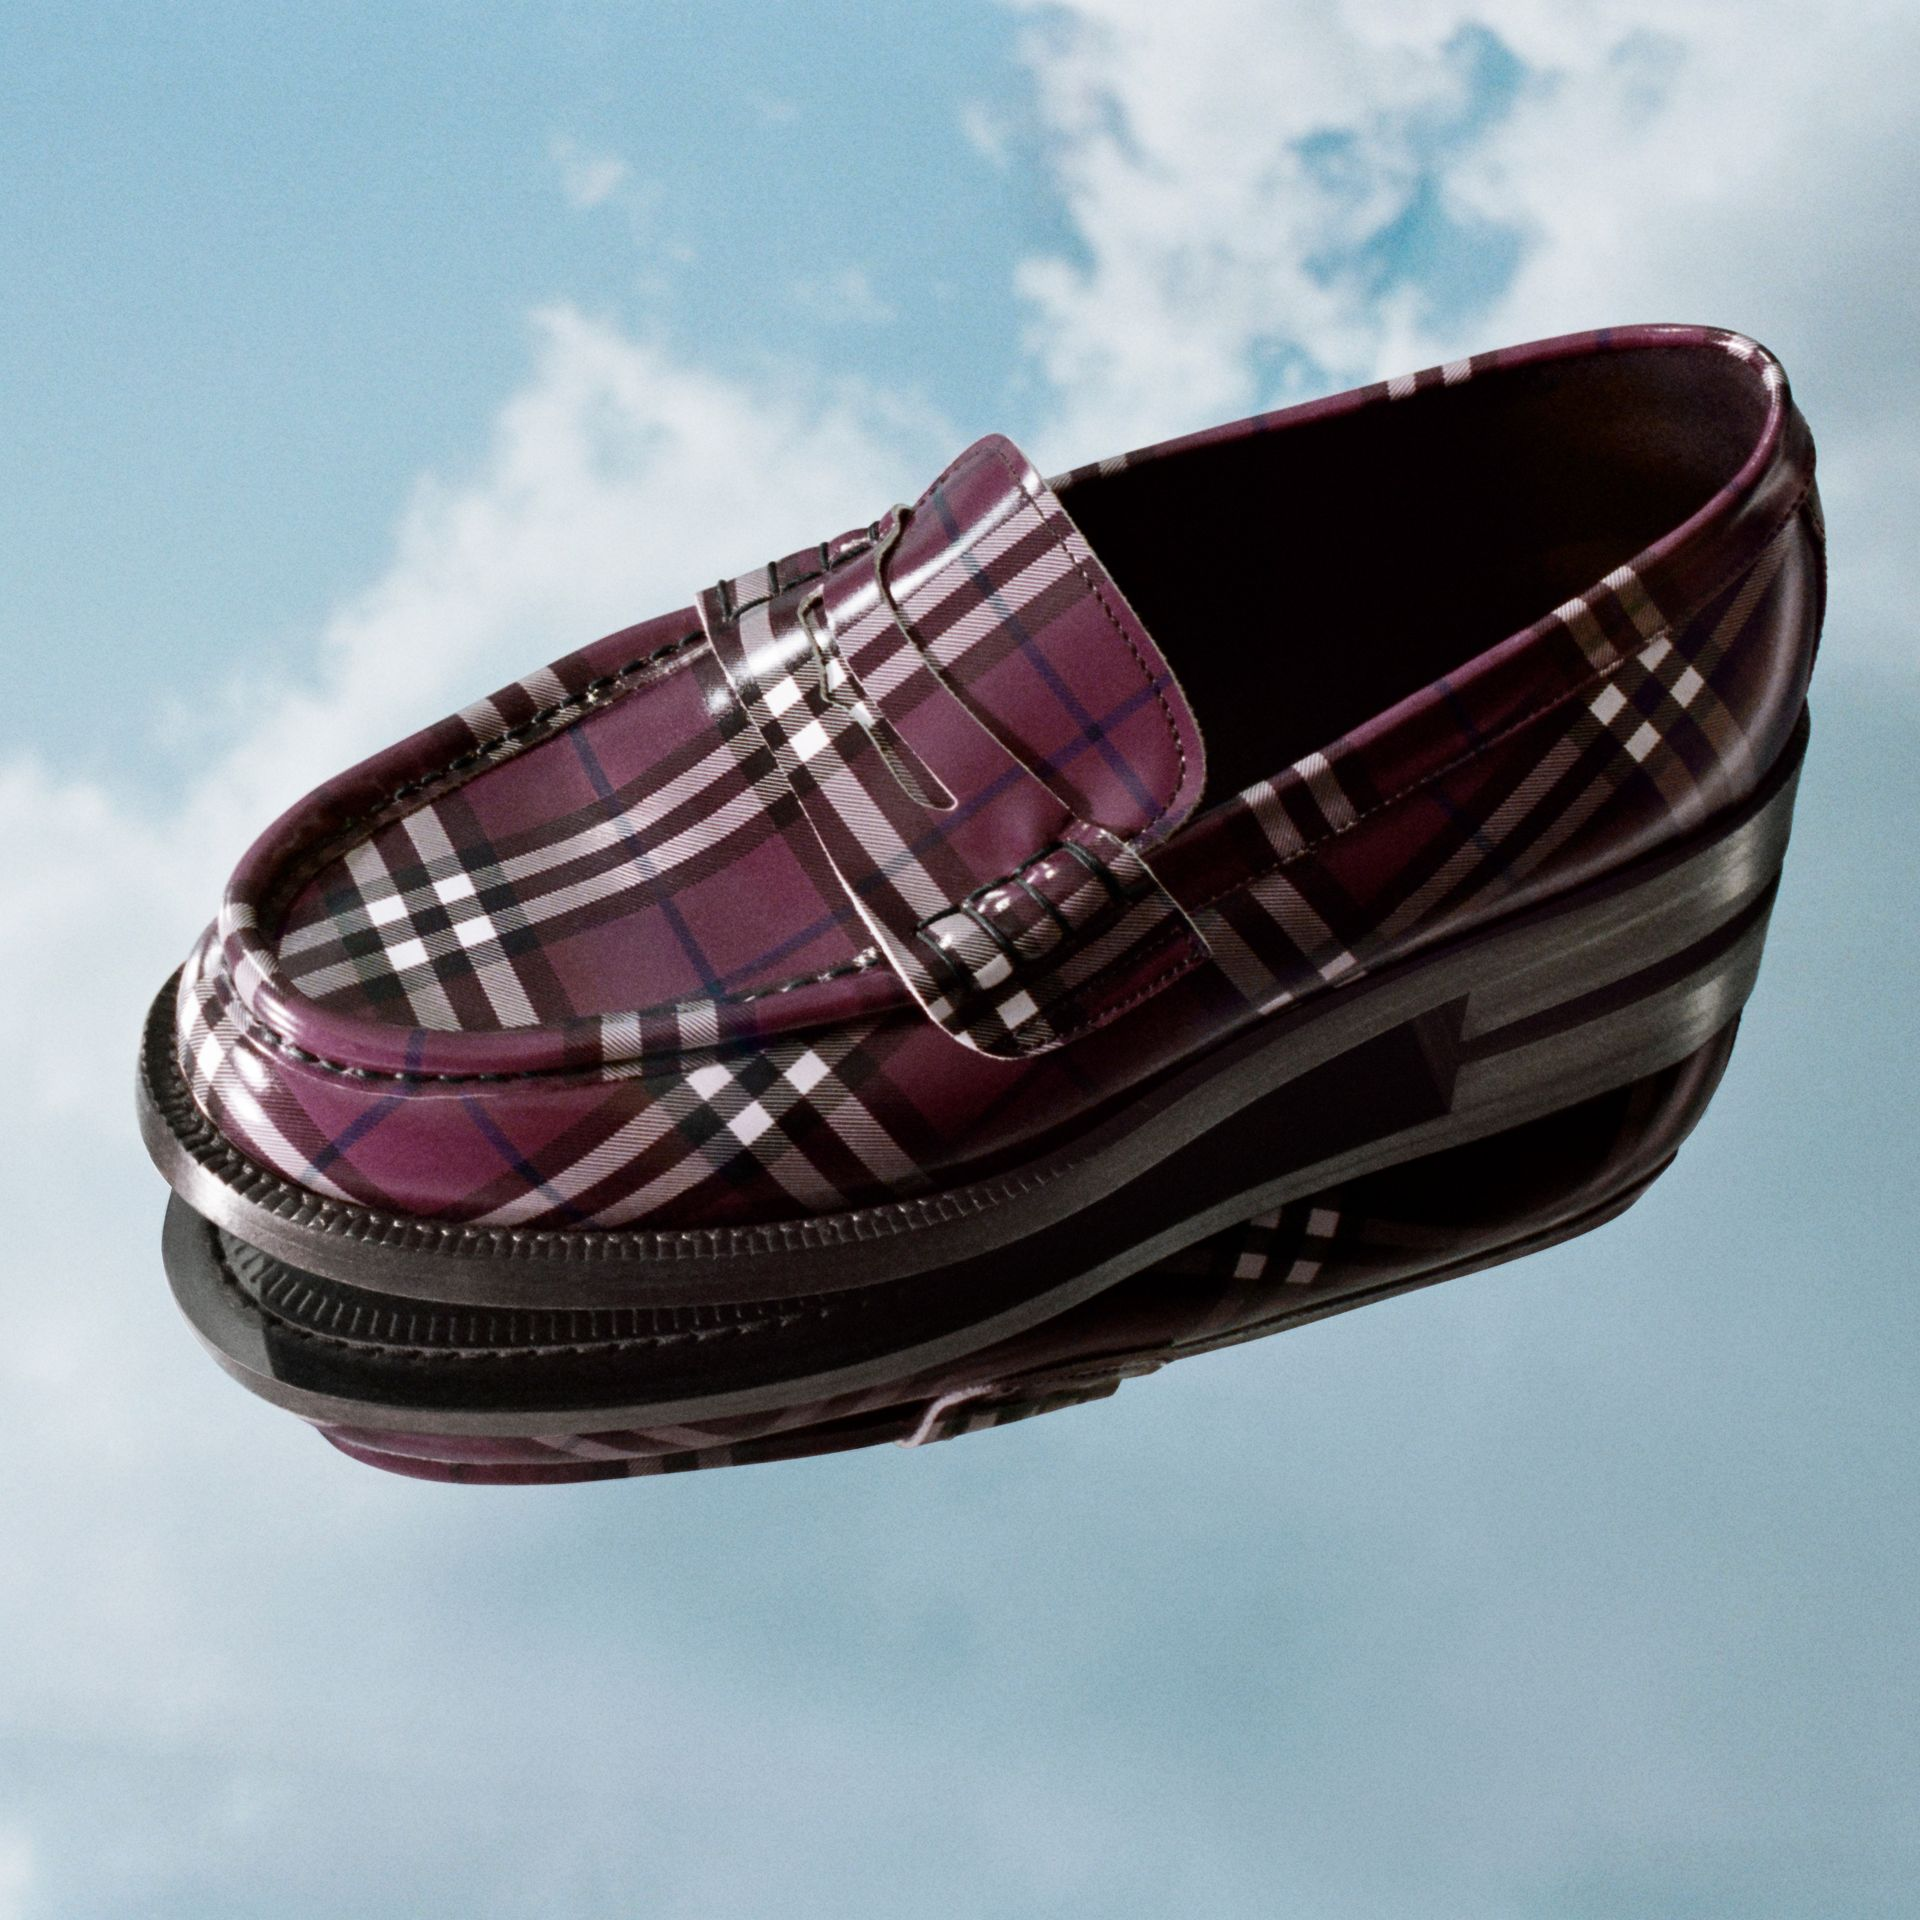 627302c75 Burberry Gosha x Burberry Check Leather Loafers at £450